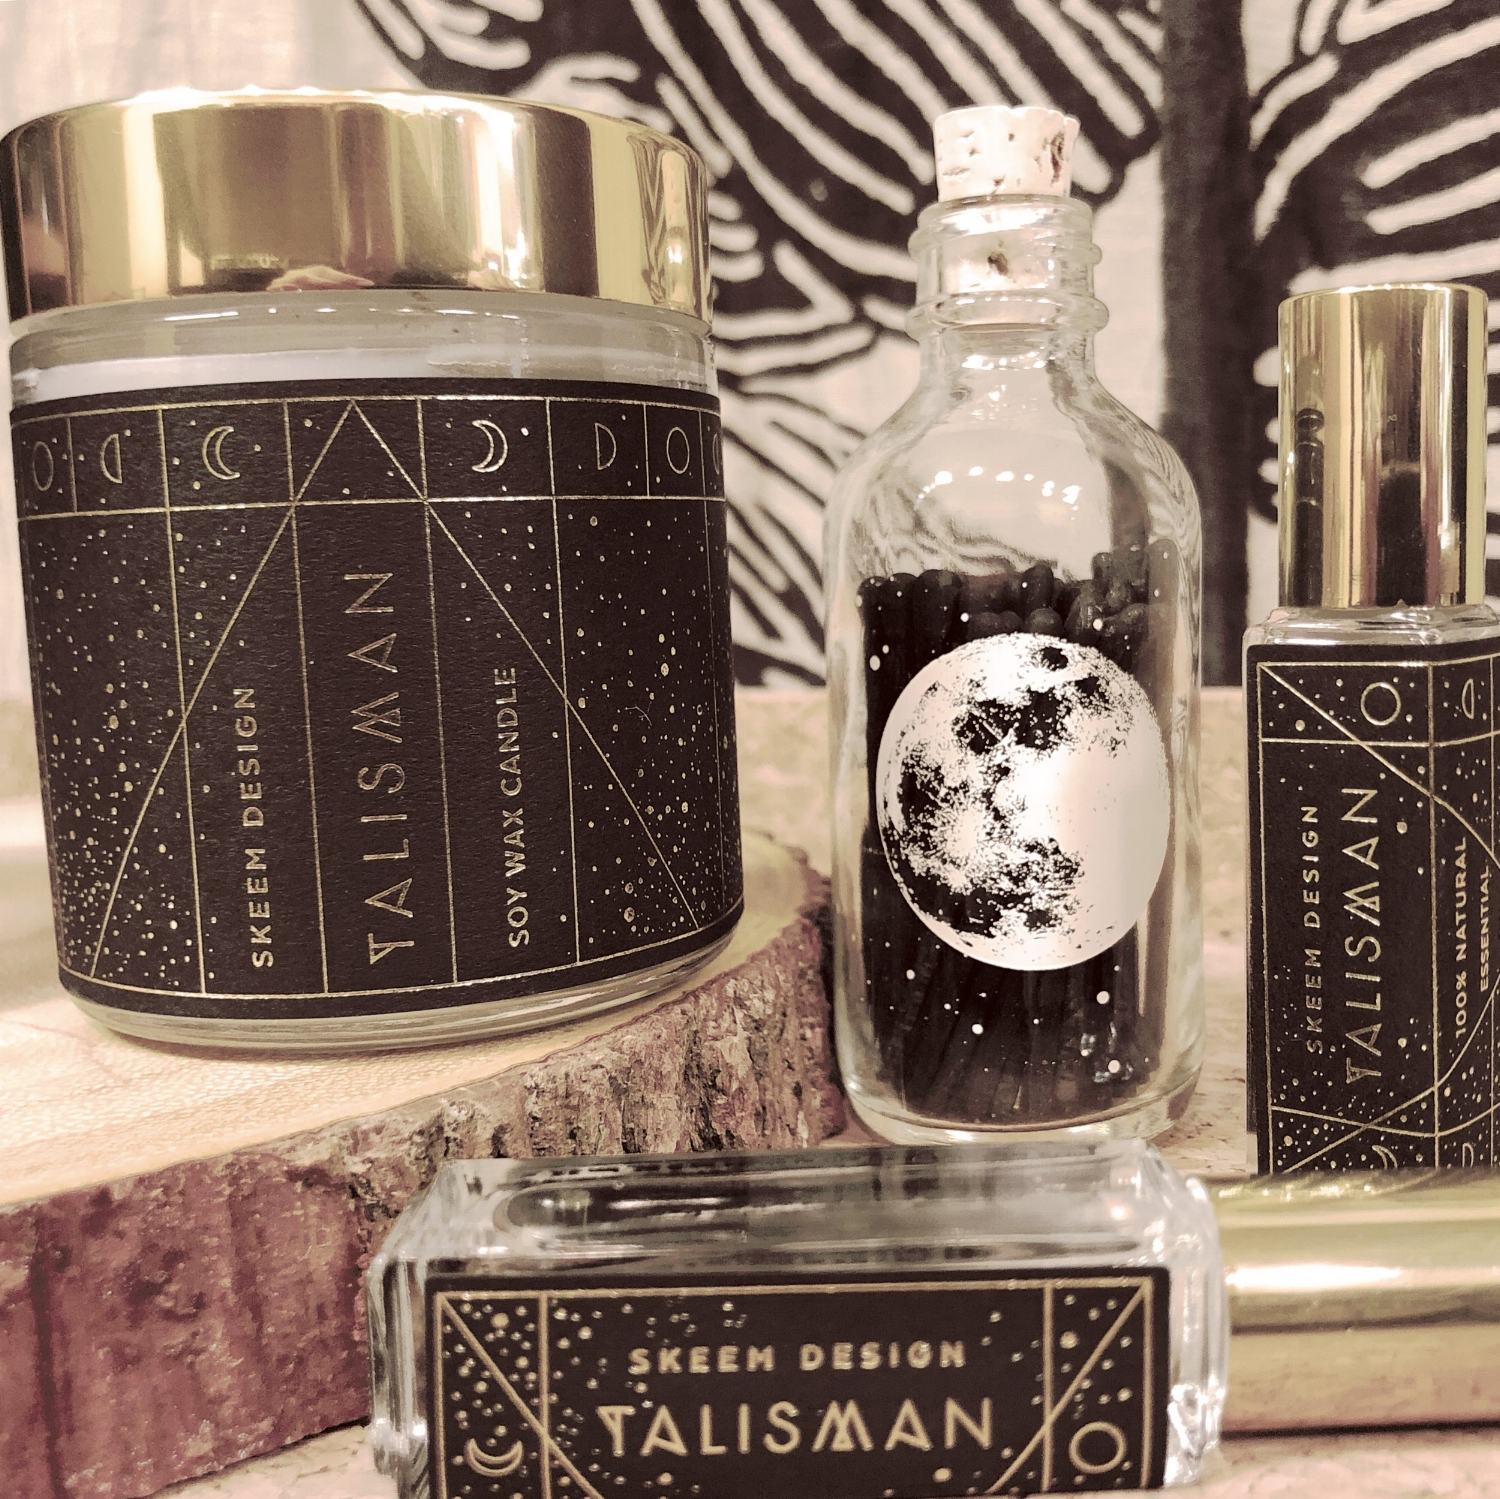 Skeem Design's Talisman Collection with Astronomy Matches.